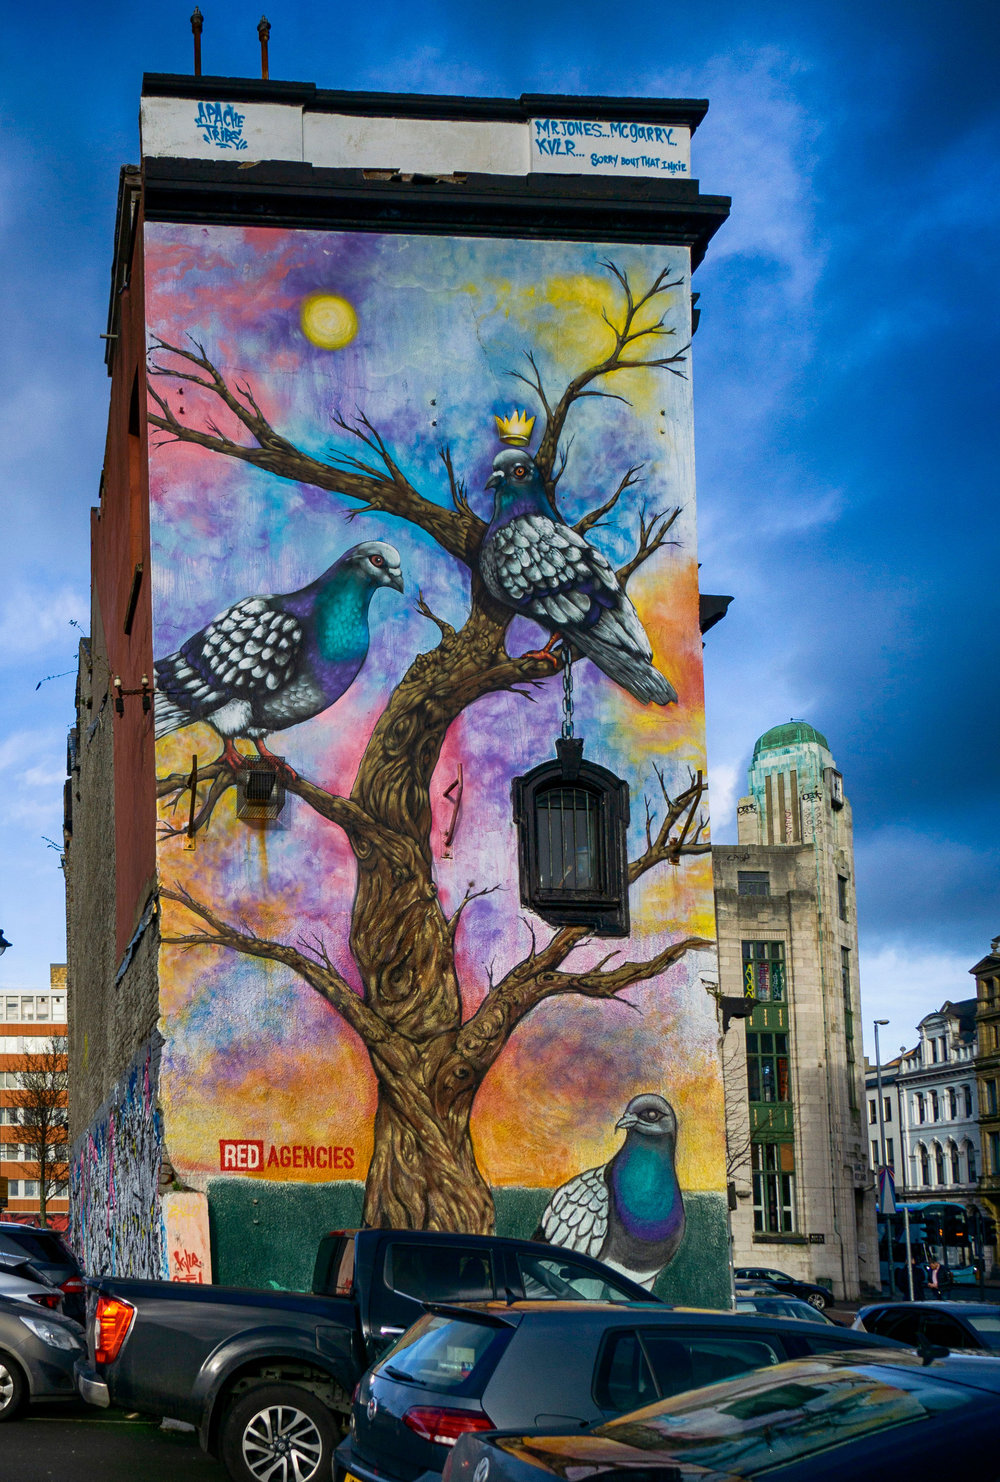 belfast_mural_vickygood_travel_photography_sm.jpg